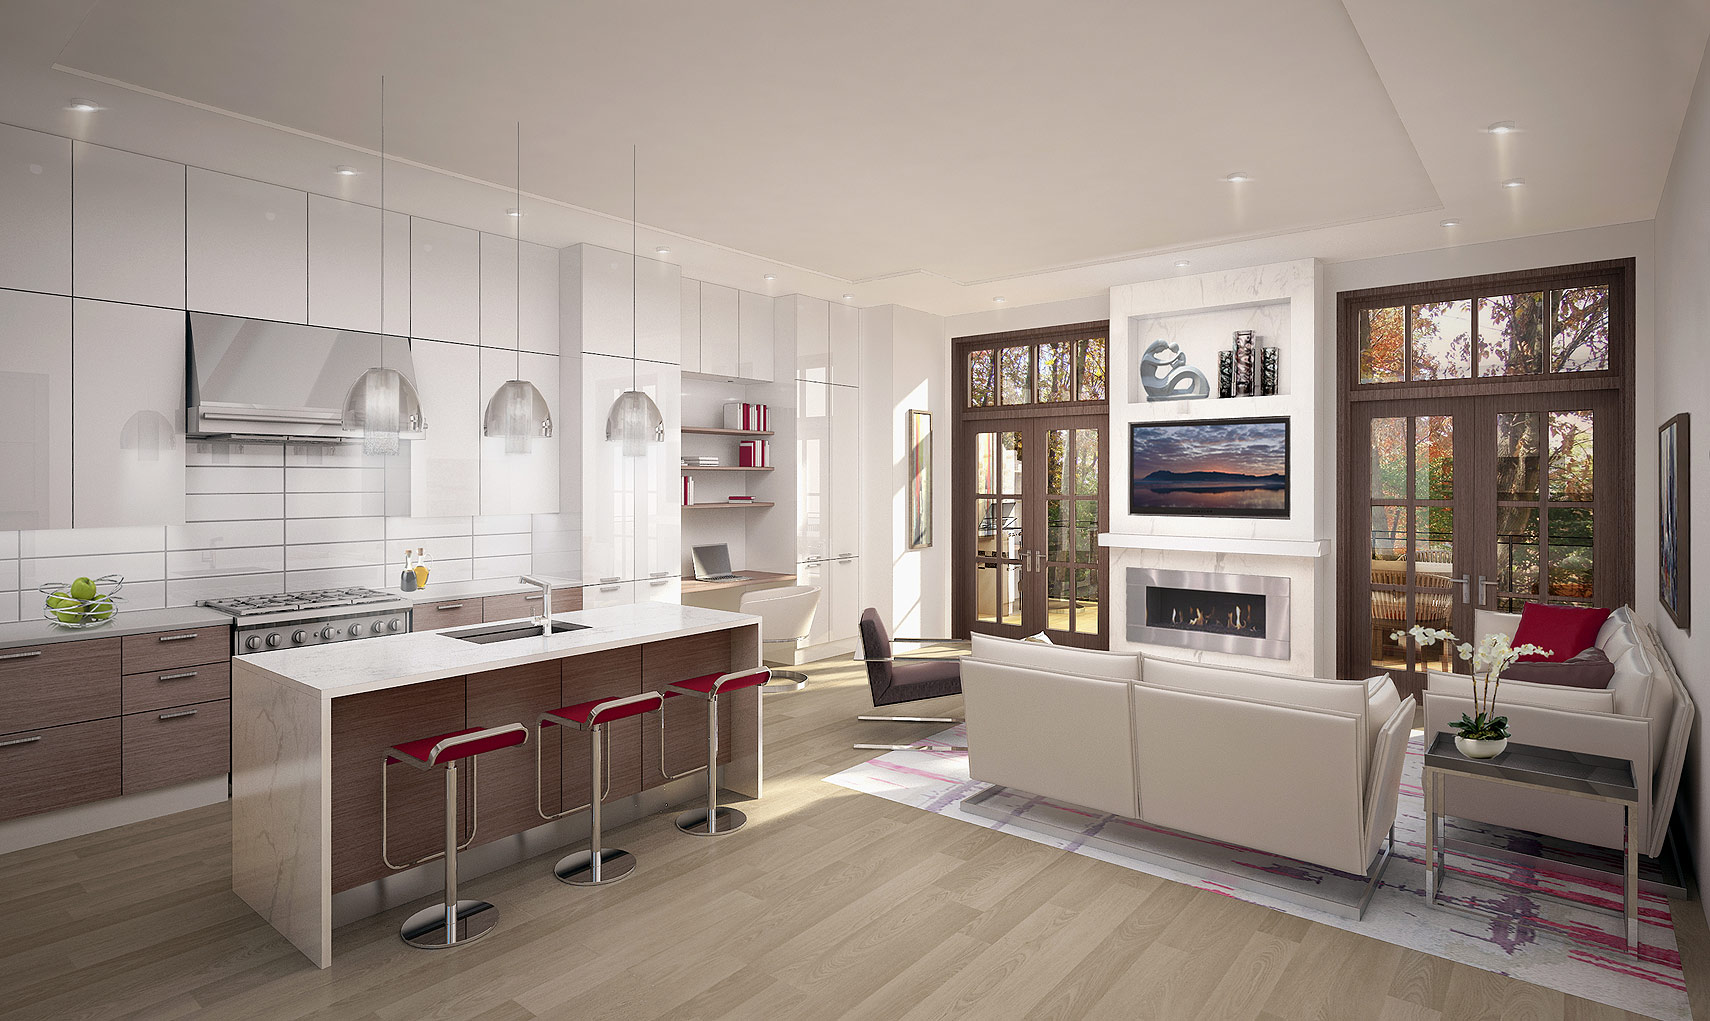 28-interiordesign-modern-MakowArchitects-019-kitchenfamilyroomrendering